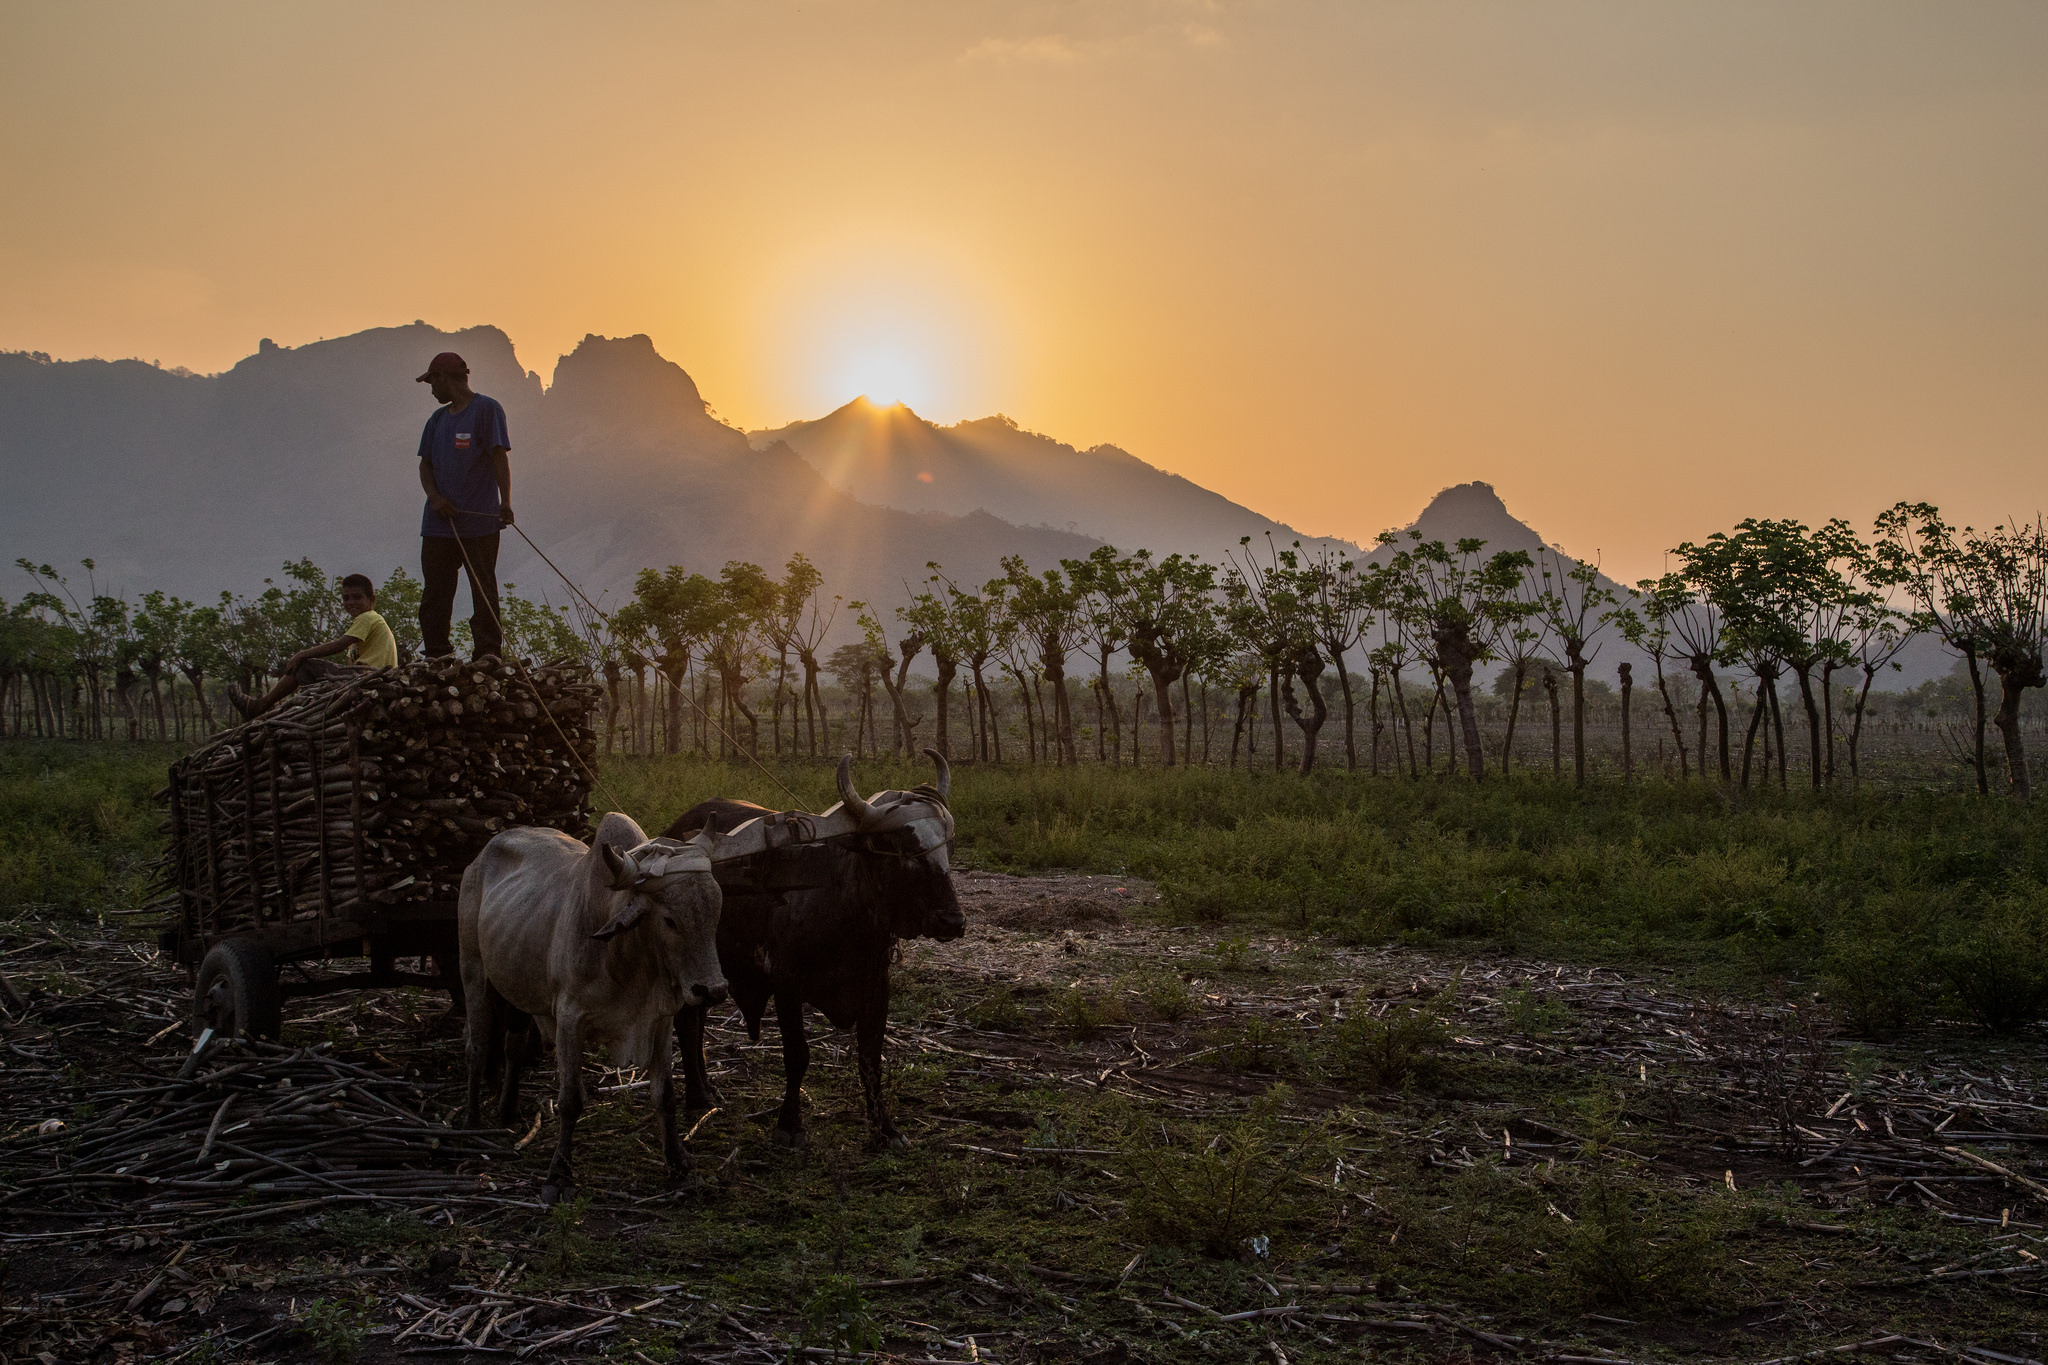 The sun sets over a set of jagged peaks in the distance. In the medium distance are a row of palm trees. In the foreground is a farmers standing on top of a cart pulled by two oxen.